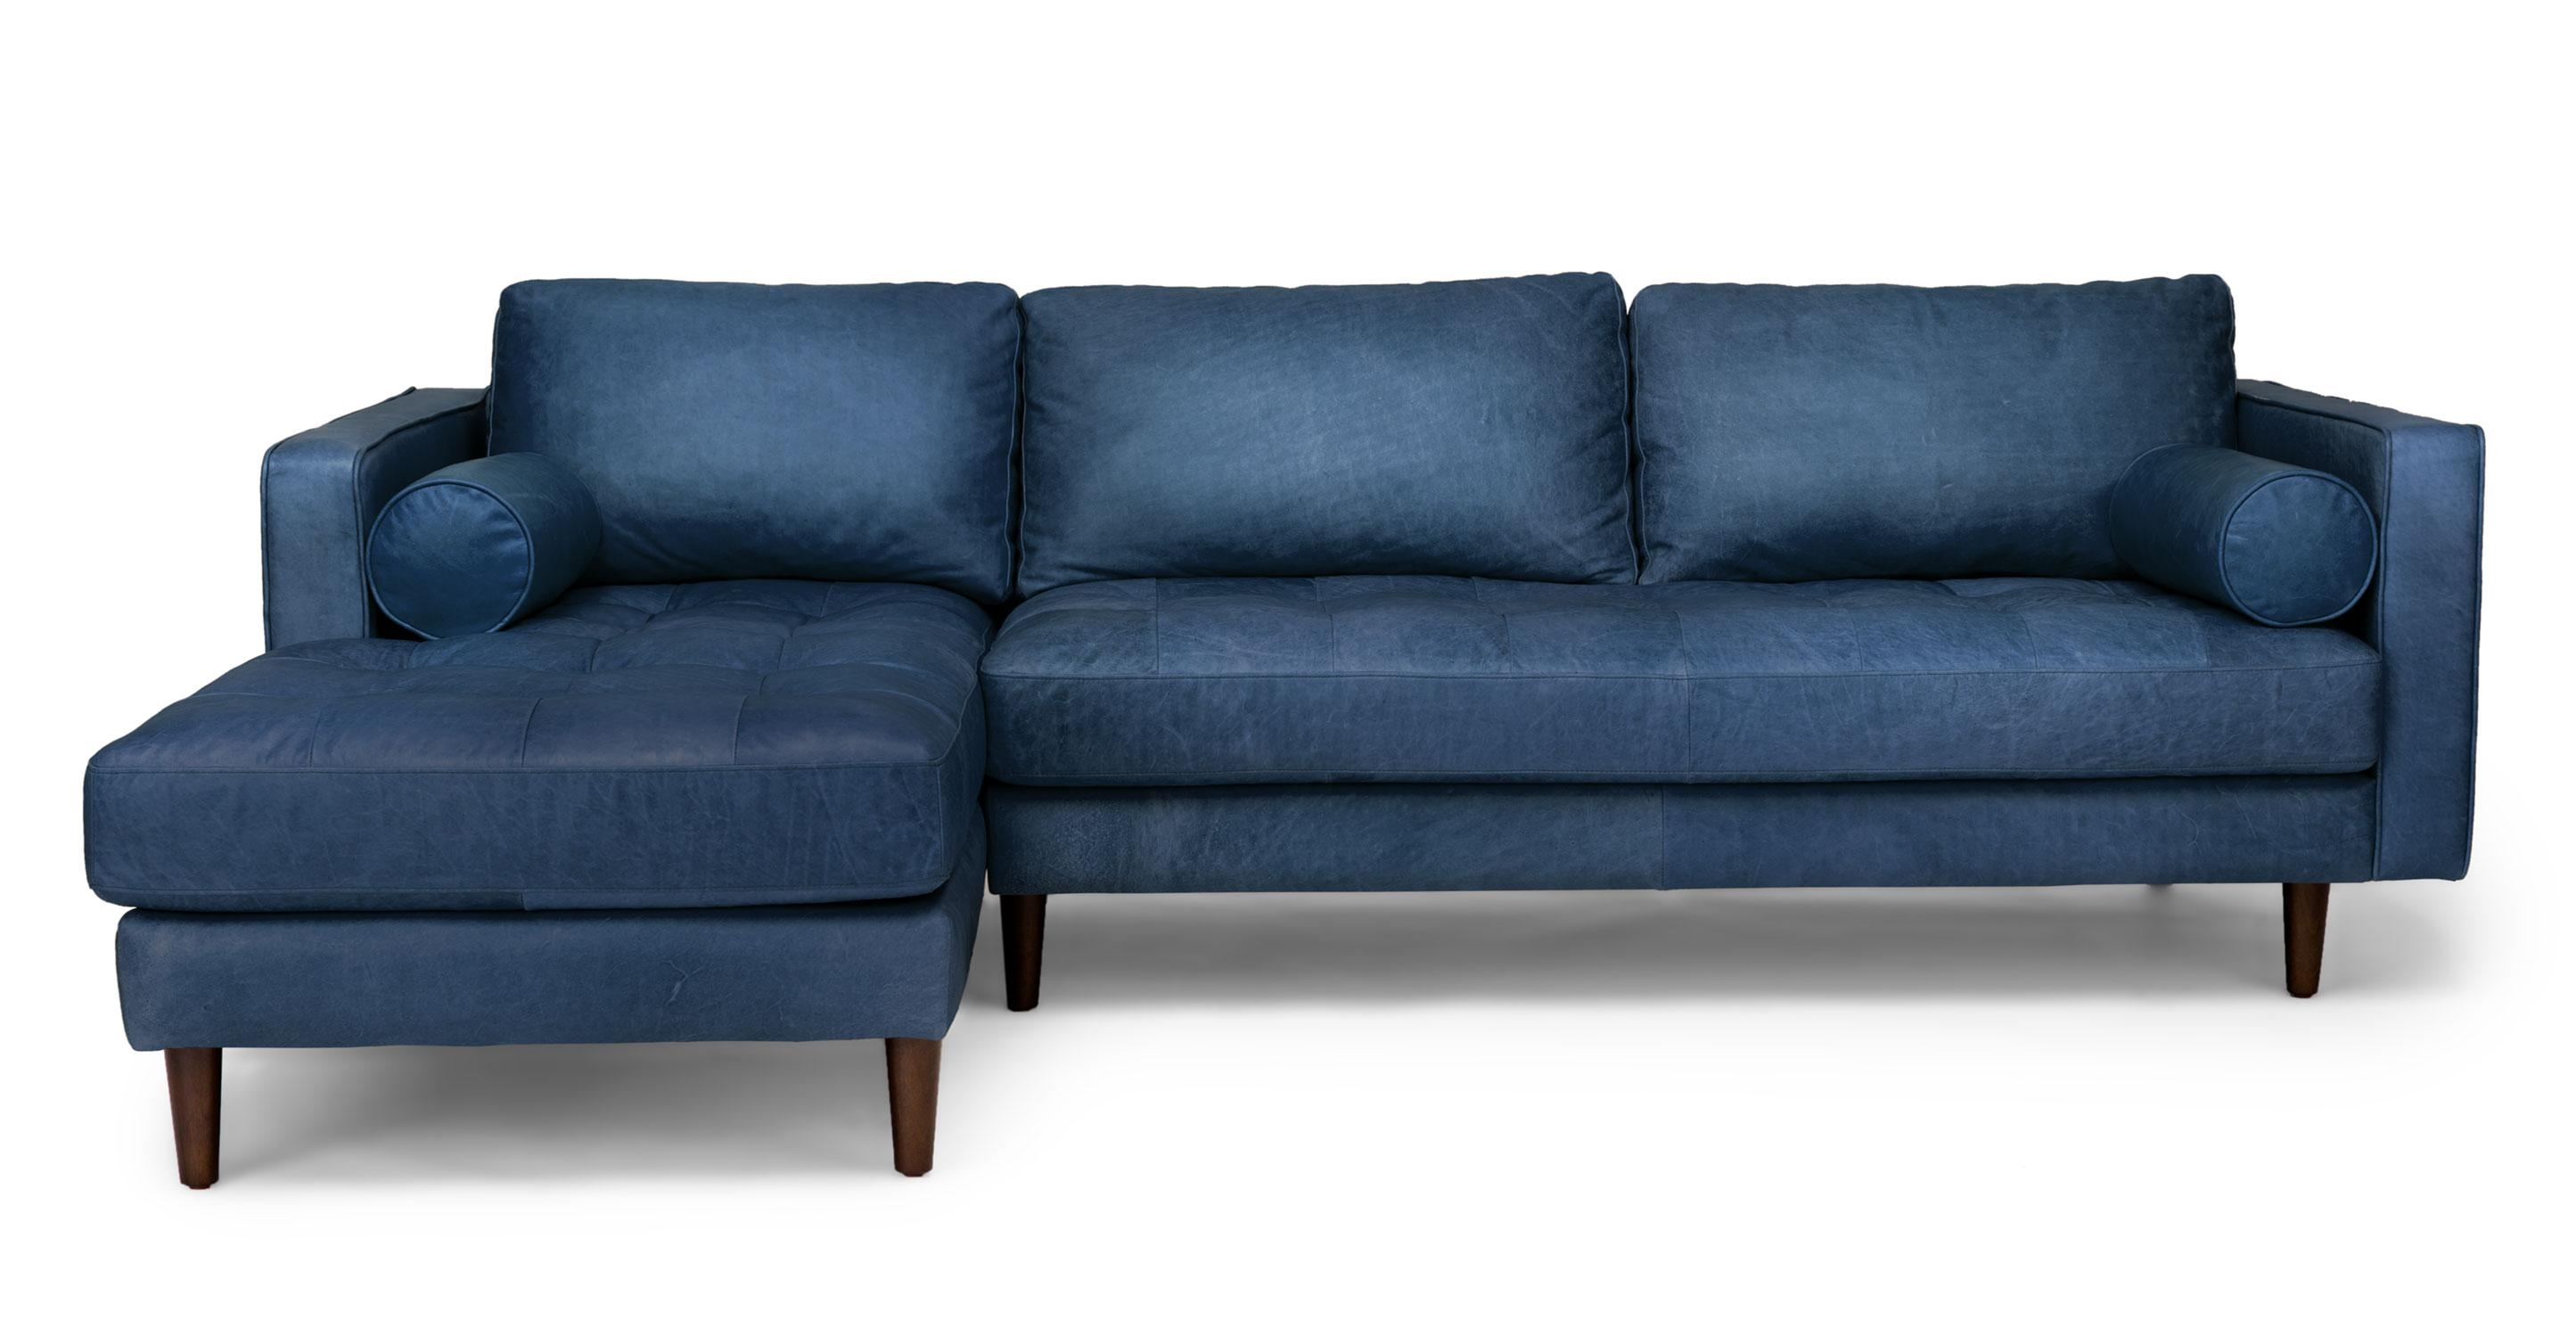 Sofas : Wonderful Leather Trend Sofa Bamboo Sofa Hm Richards Intended For Bambo Sofas (View 21 of 22)